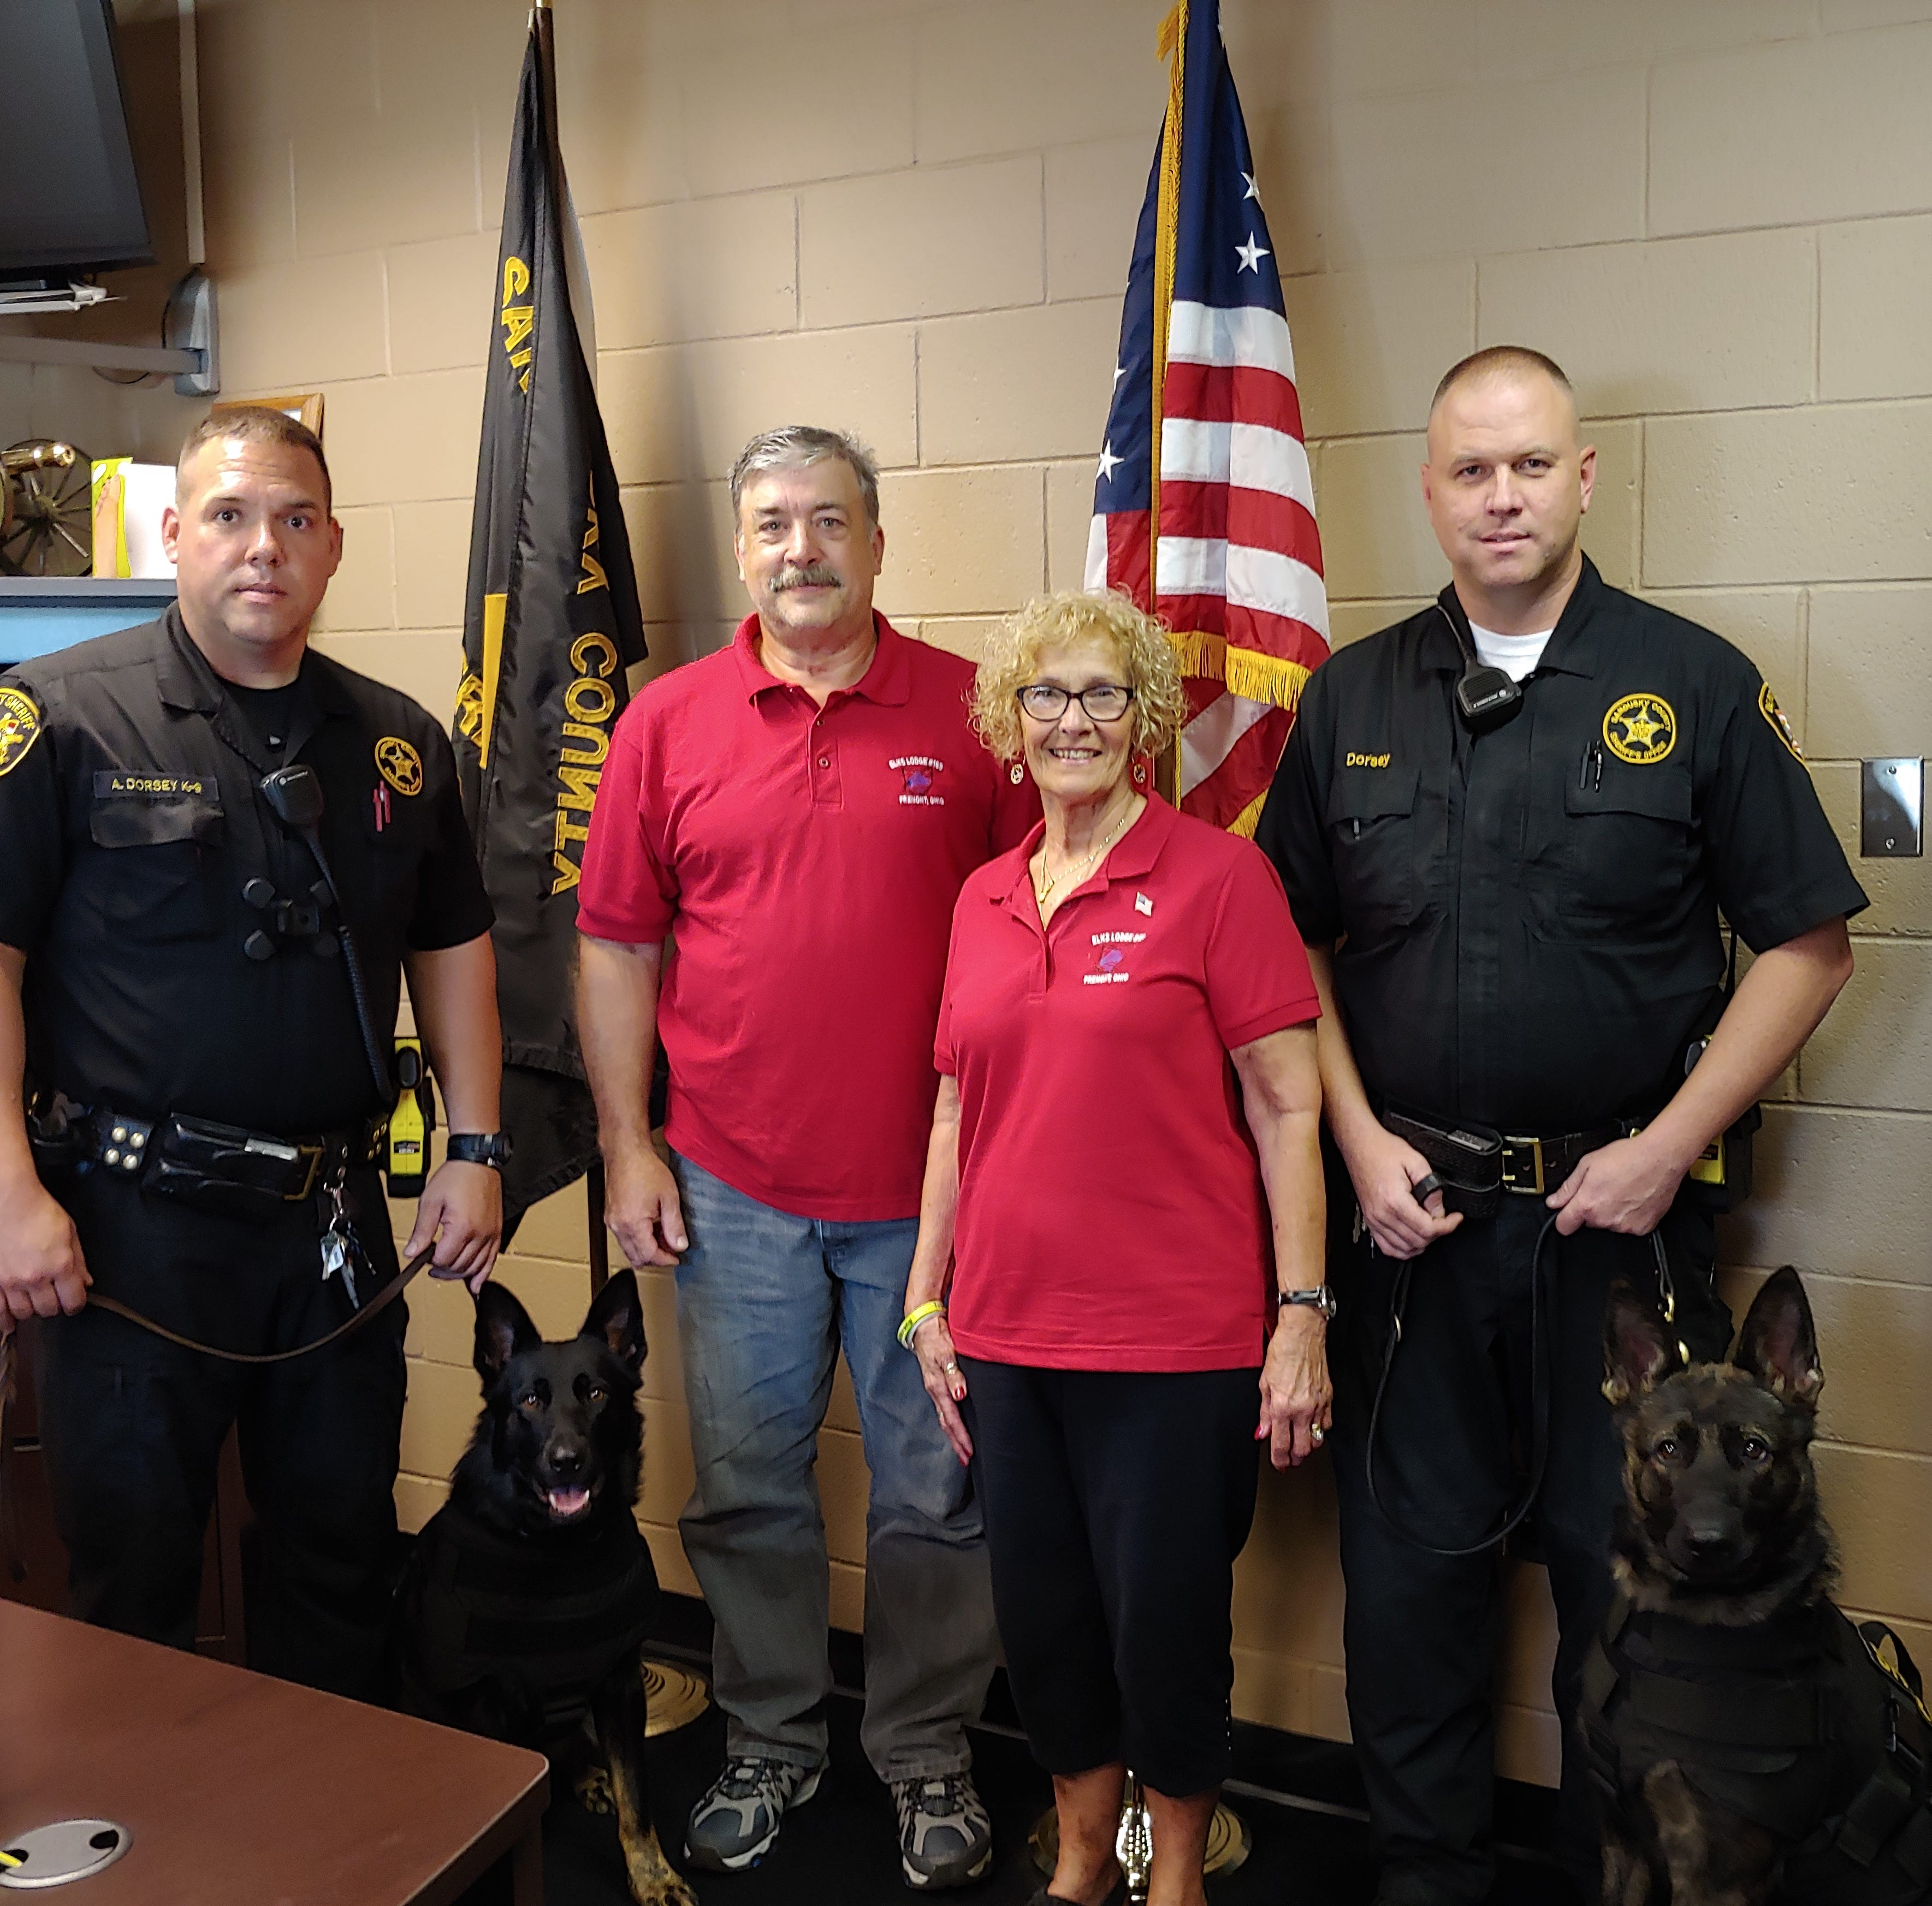 Community Roundup: Sheriff's Office receives K-9 vests from Elks